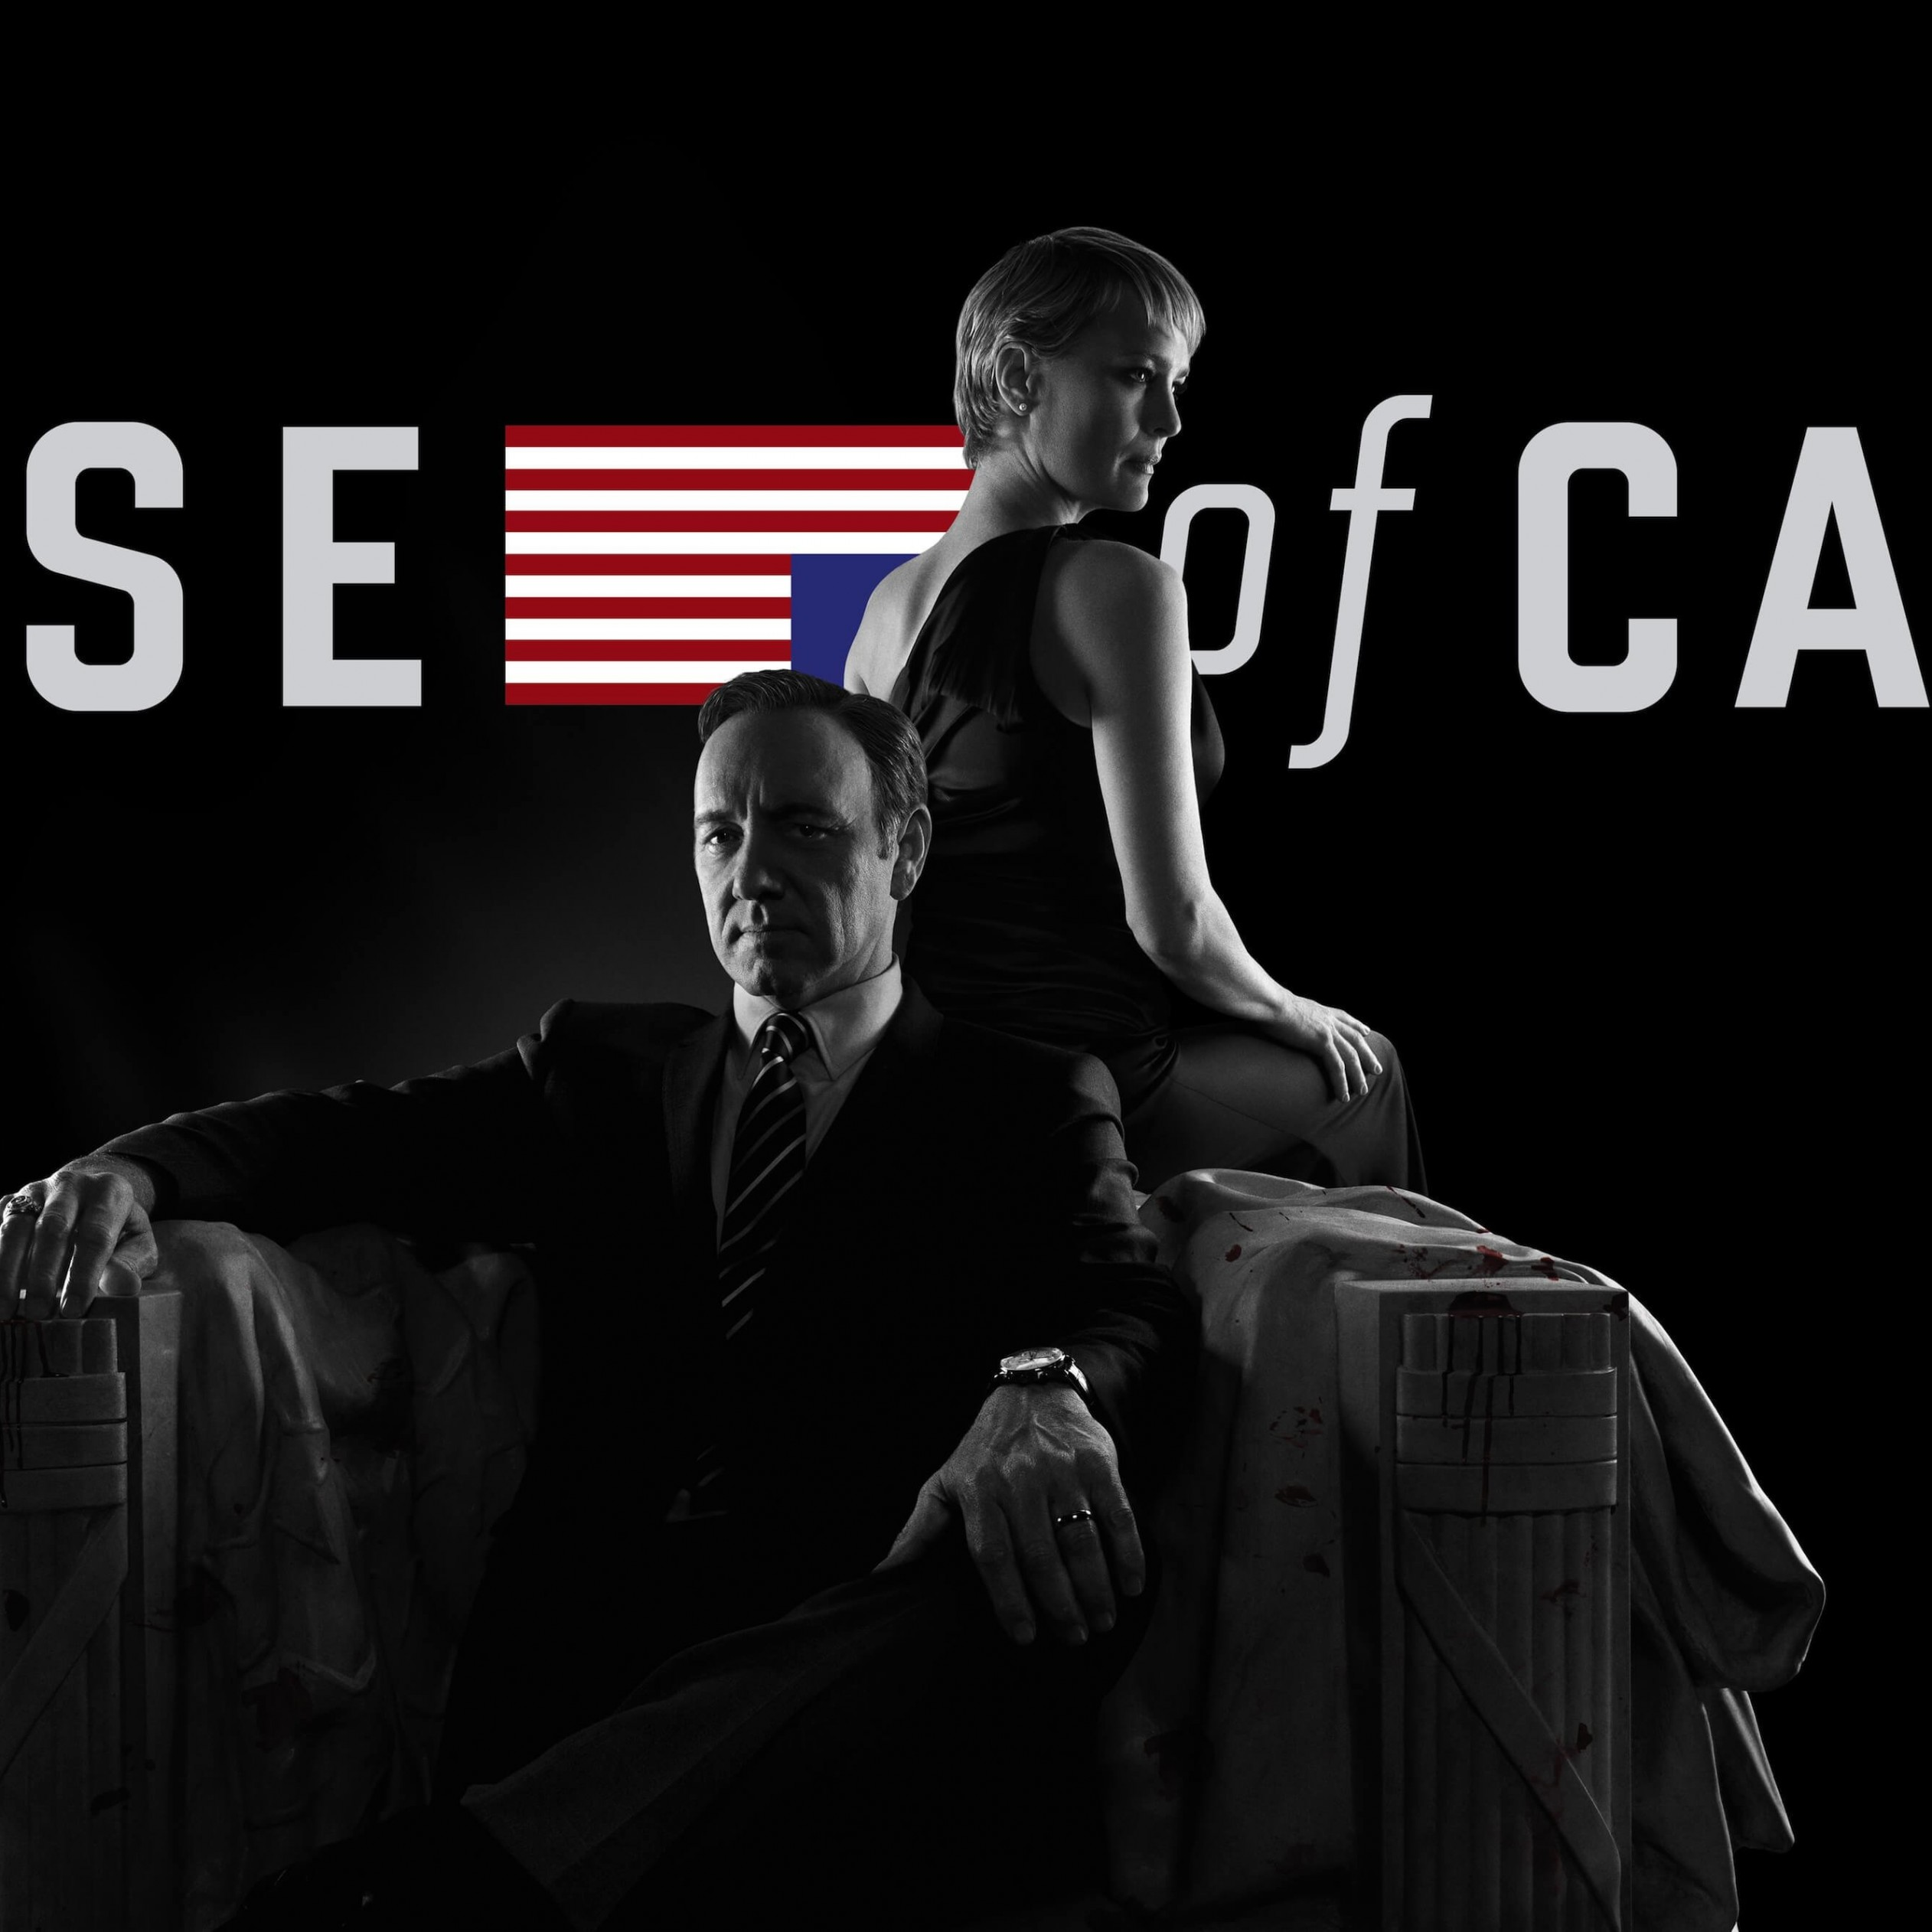 House of Cards - Black & White Wallpaper for Apple iPad mini 2